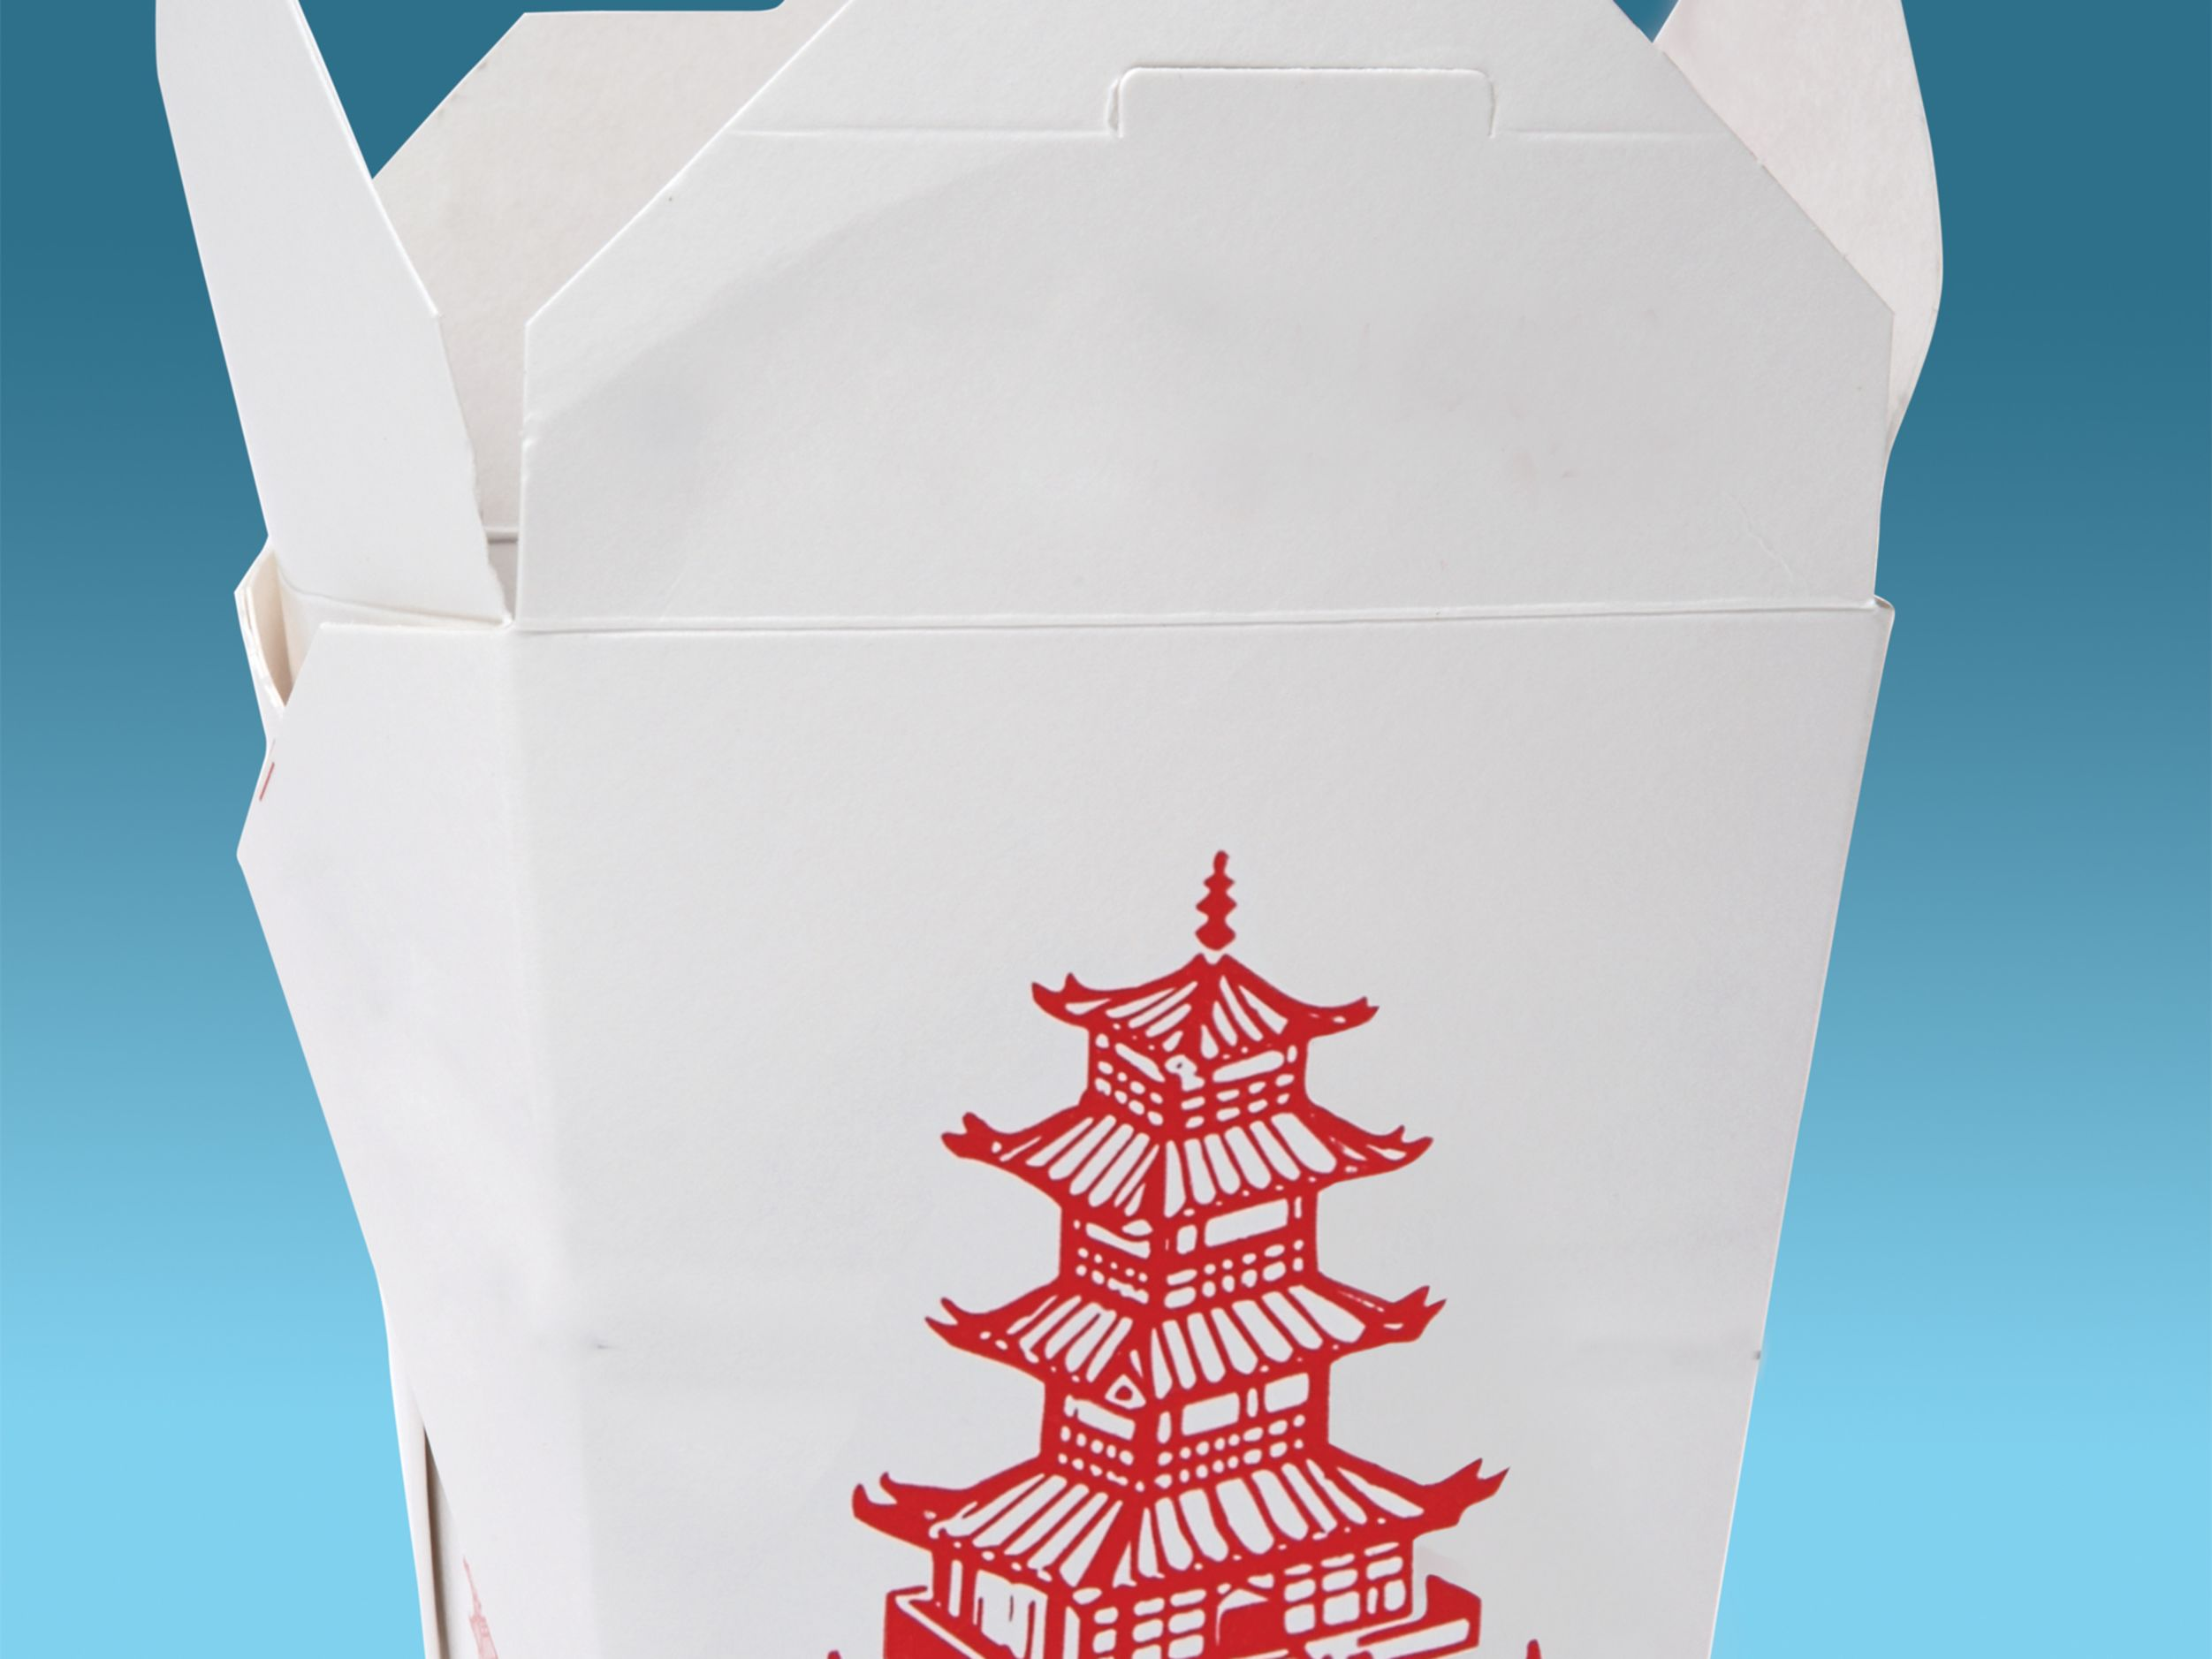 Jis 1115 lo mein chinese food container jomipl